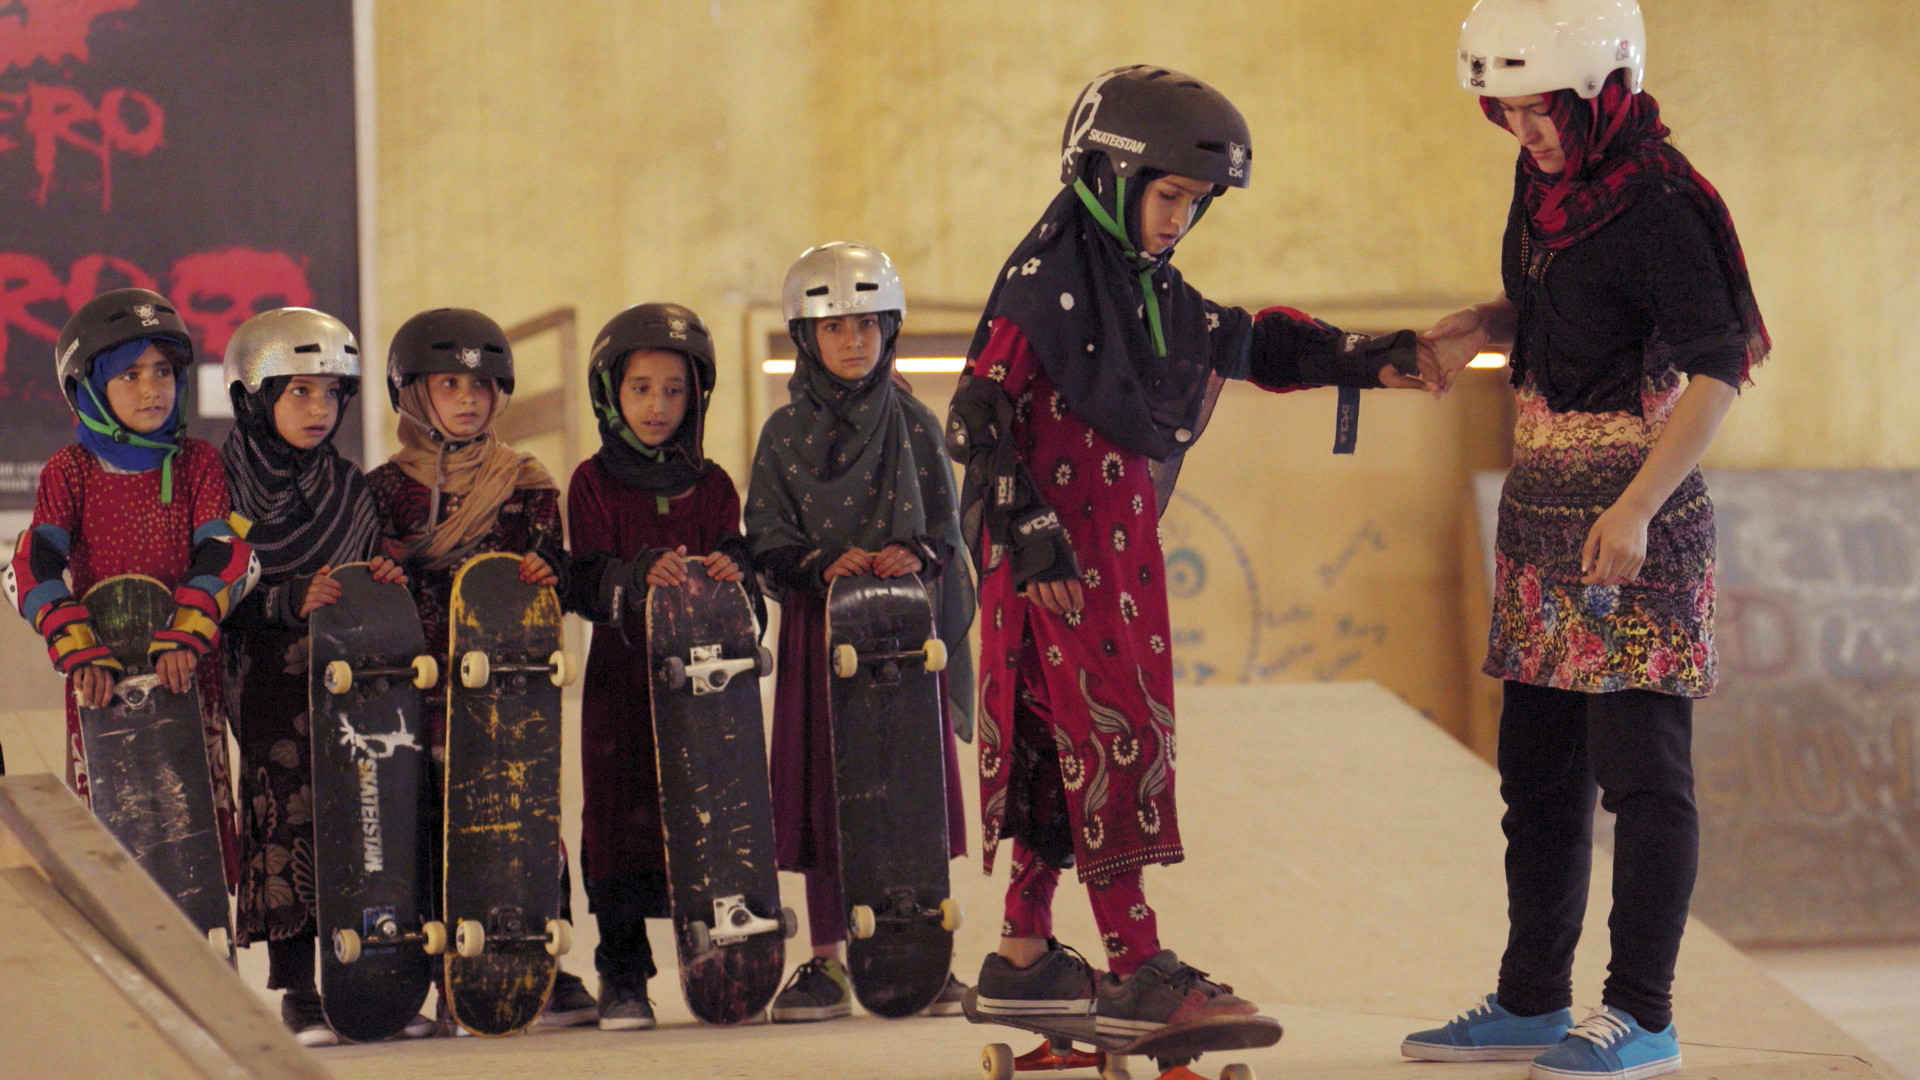 OT19-FILM-Learning to Skateboard in a Warzone (if you_re a girl).jpg